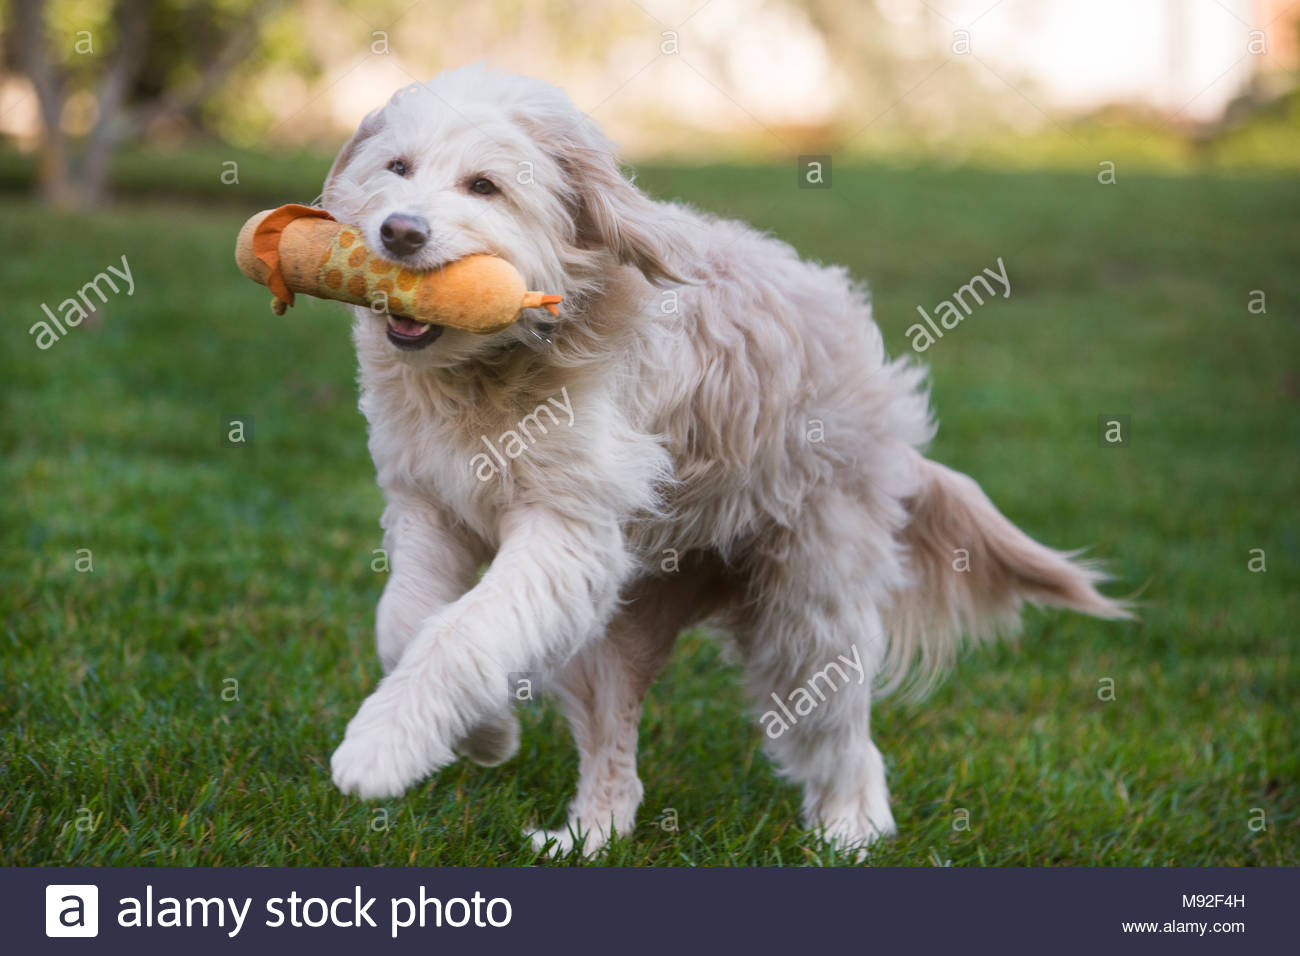 White goldendoodle running on grass with stuffed toy in mouth - Stock Image